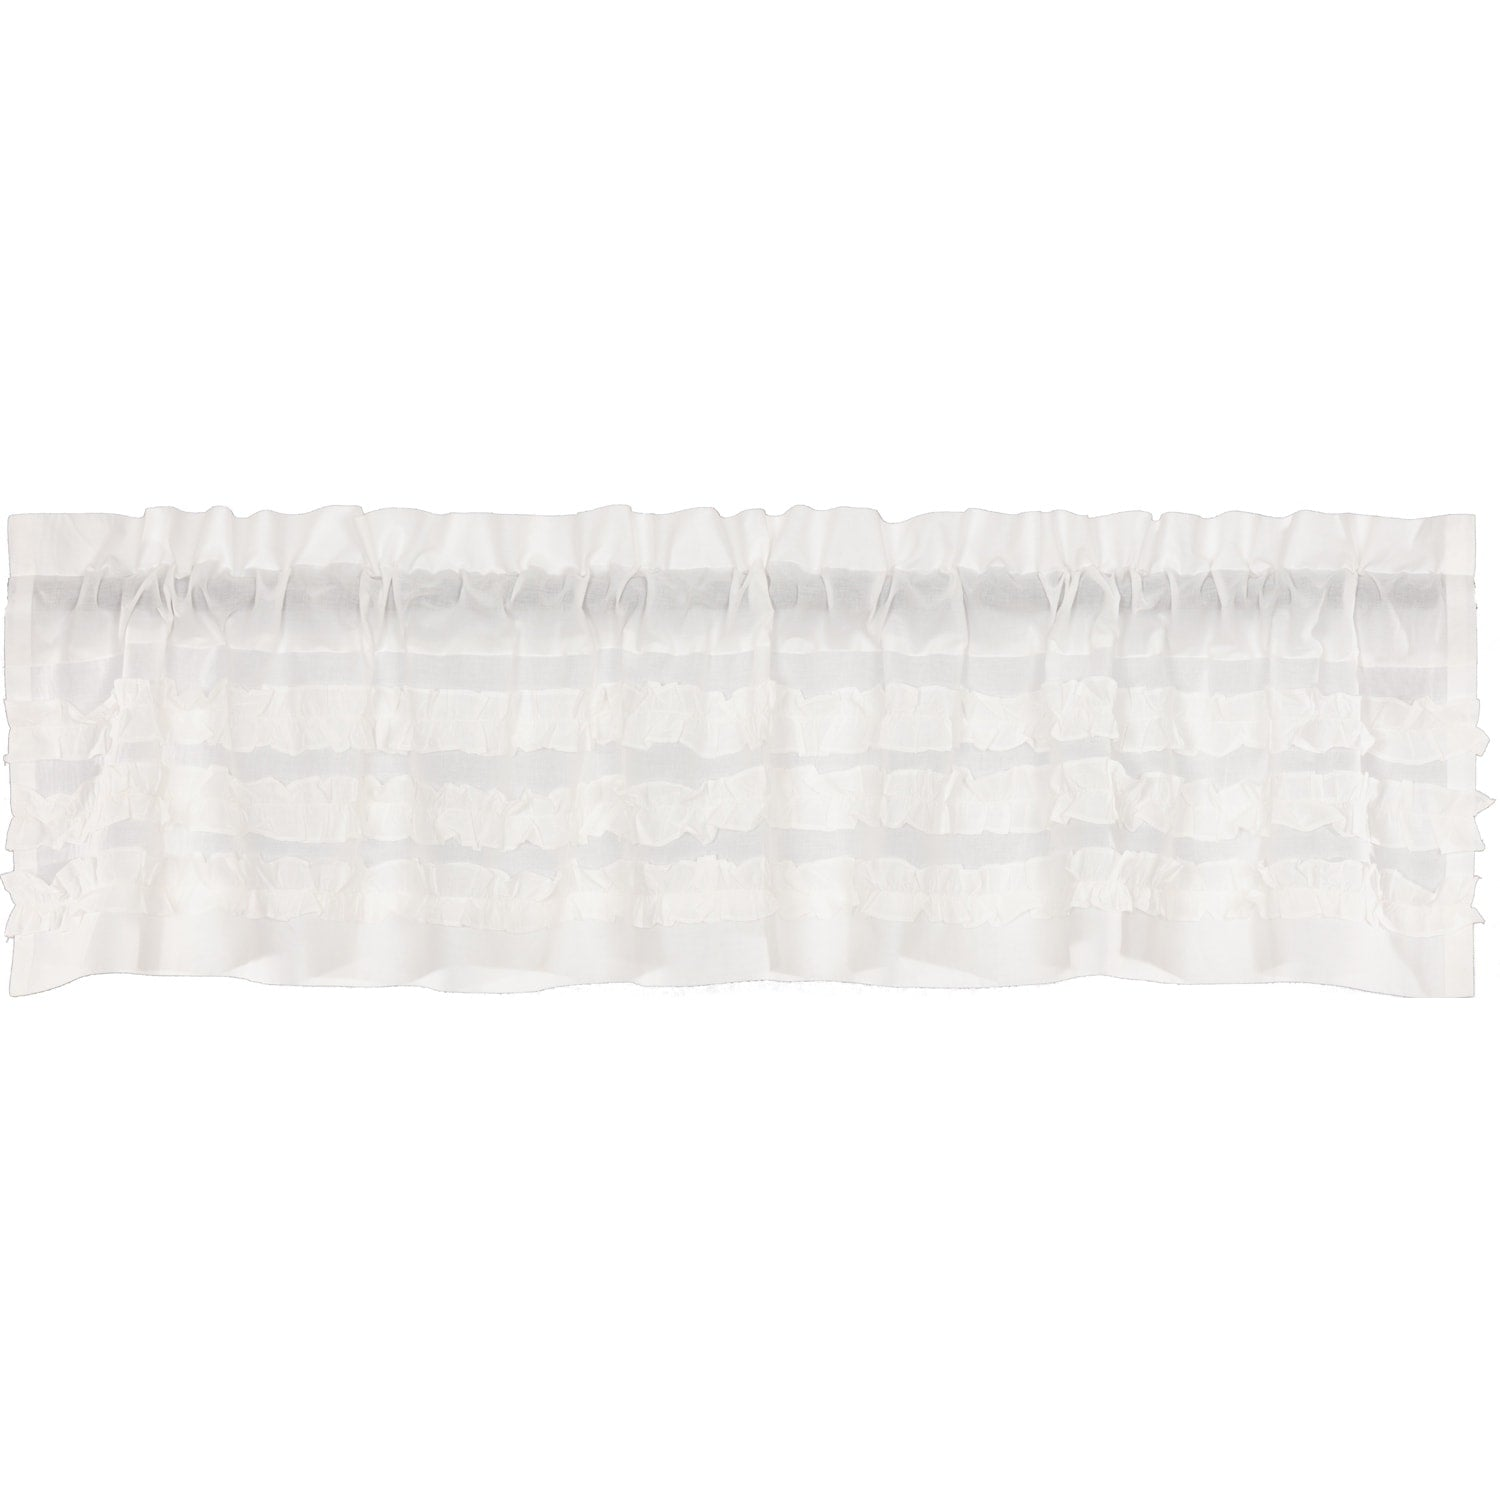 White Farmhouse Kitchen Curtains Vhc Ruffled Sheer Petticoat Valance Rod Pocket Cotton Solid Color Ruched Ruffle 100% - Diamond Home USA